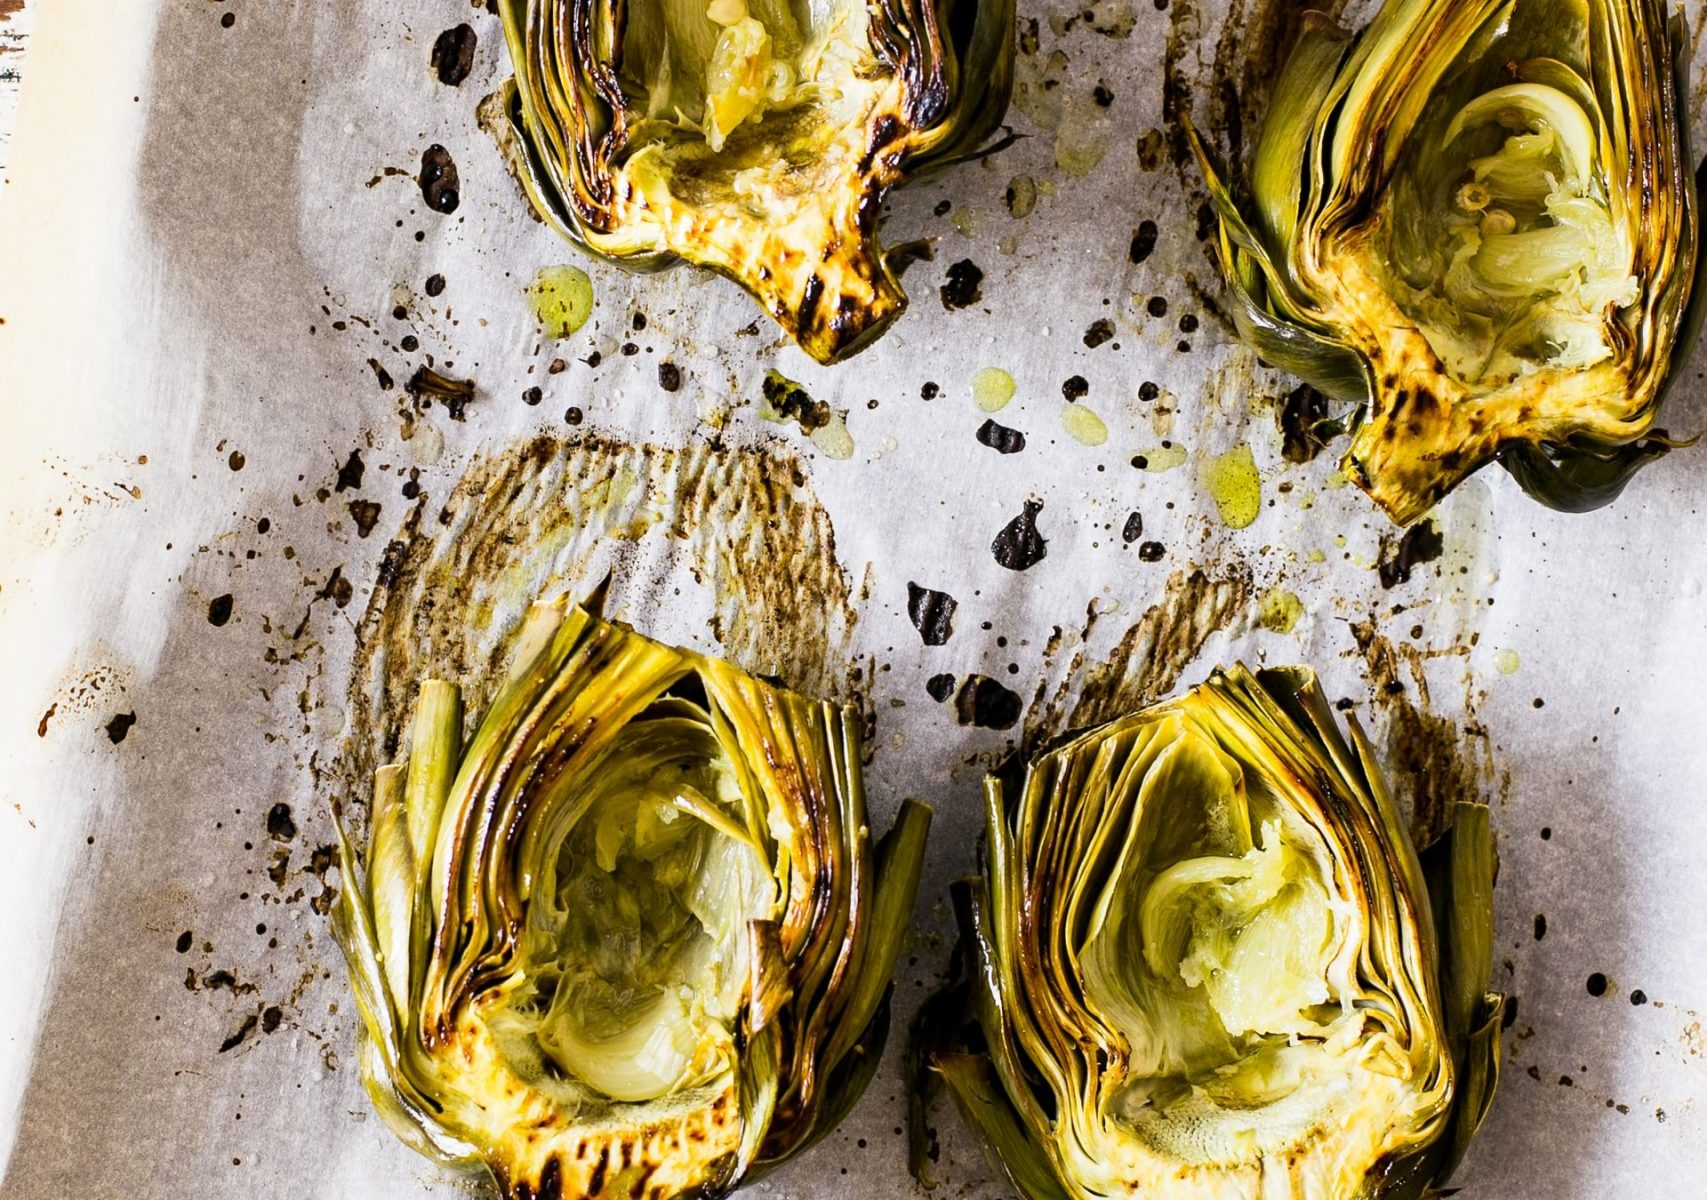 Roasted artichoke hearts on a roasting pan lined with parchment paper